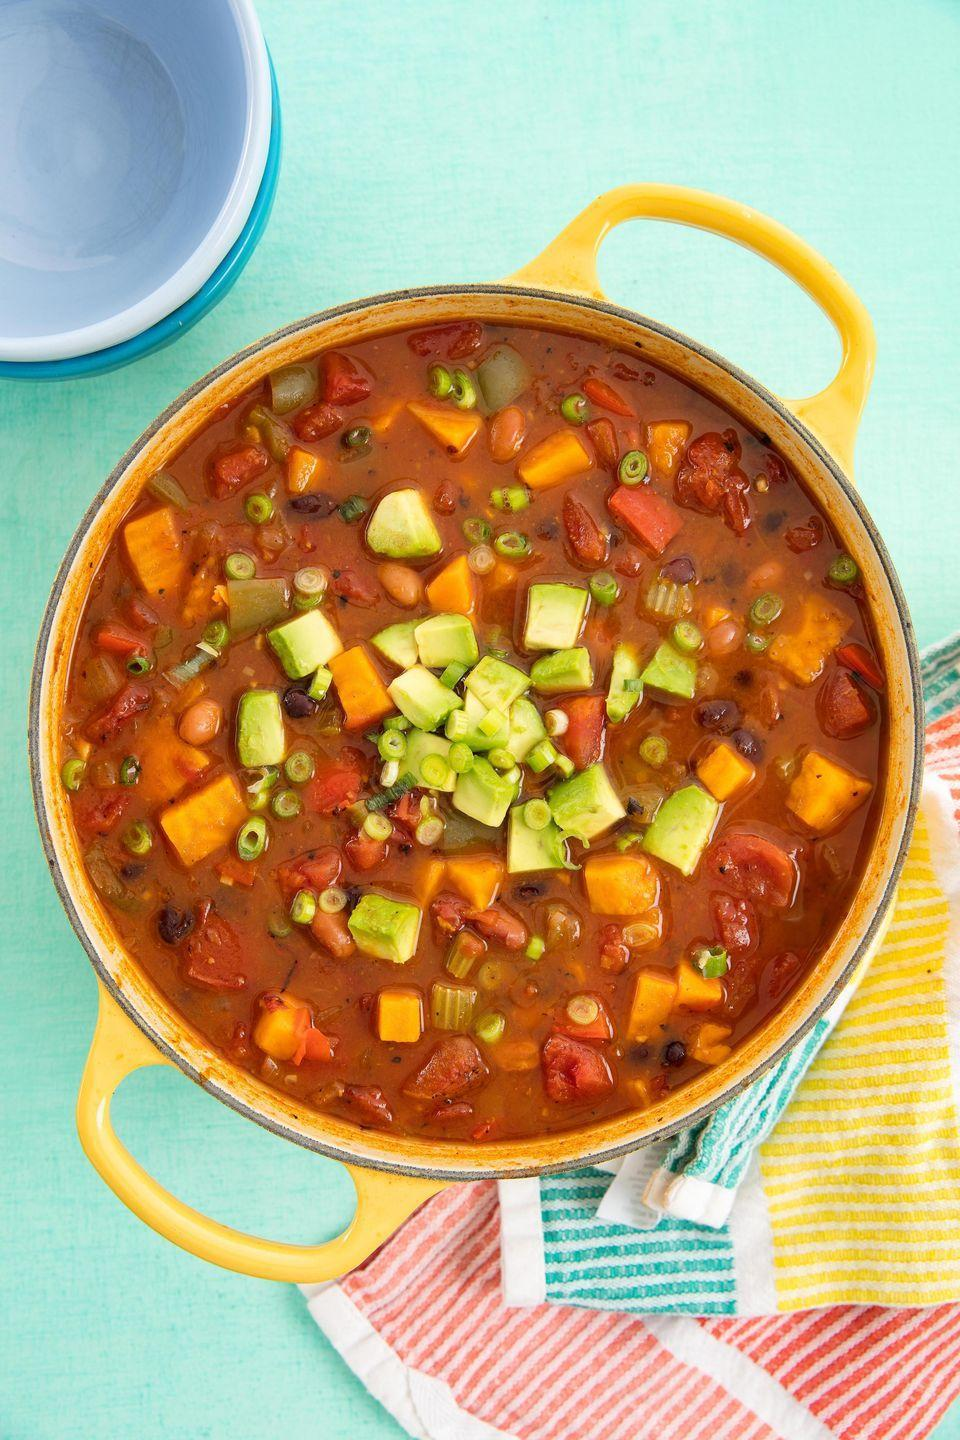 """<p>Who said chili has to have meat anyways?</p><p>Get the recipe from <a href=""""https://www.delish.com/cooking/recipe-ideas/recipes/a58454/easy-vegan-chili-recipe/"""" rel=""""nofollow noopener"""" target=""""_blank"""" data-ylk=""""slk:Delish"""" class=""""link rapid-noclick-resp"""">Delish</a>.</p>"""